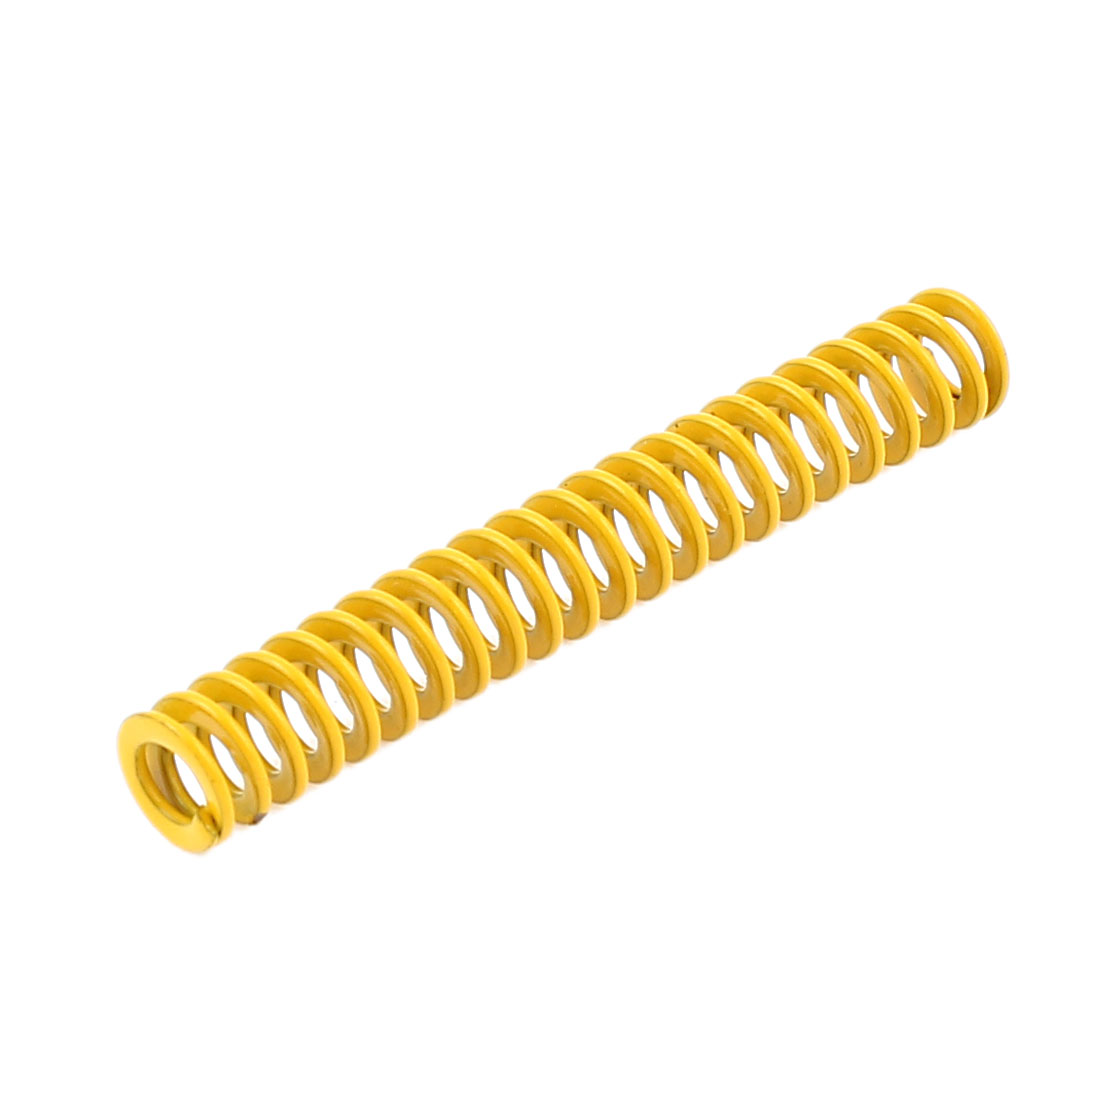 Yellow Alloy Steel Light Load Press Flat Coil Compression Die Spring 6mm x 3mm x 40mm